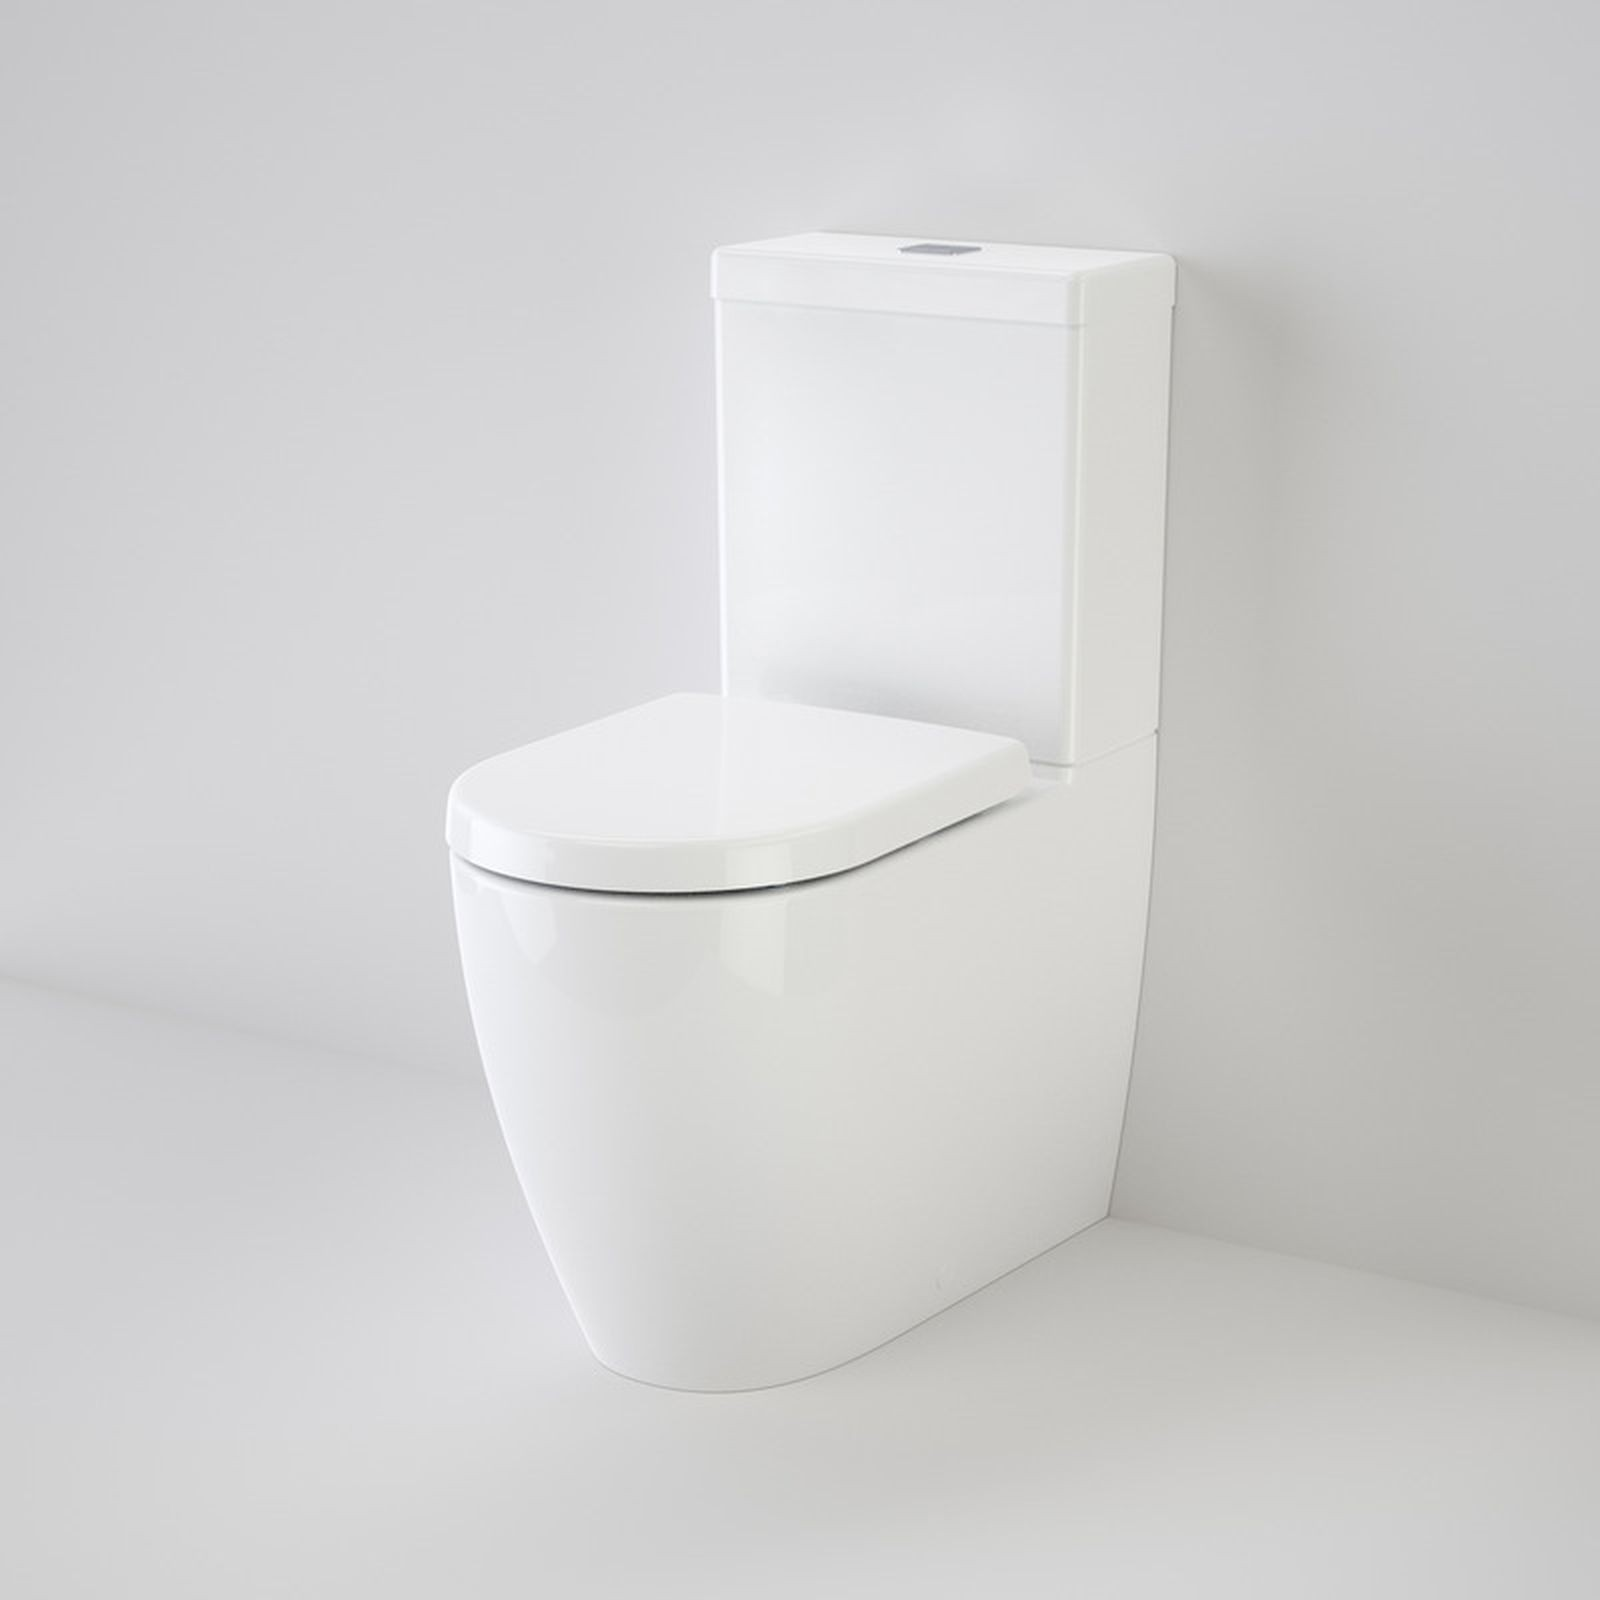 Caroma Urbane Wall Faced Close Coupled Toilet Suite Design Content